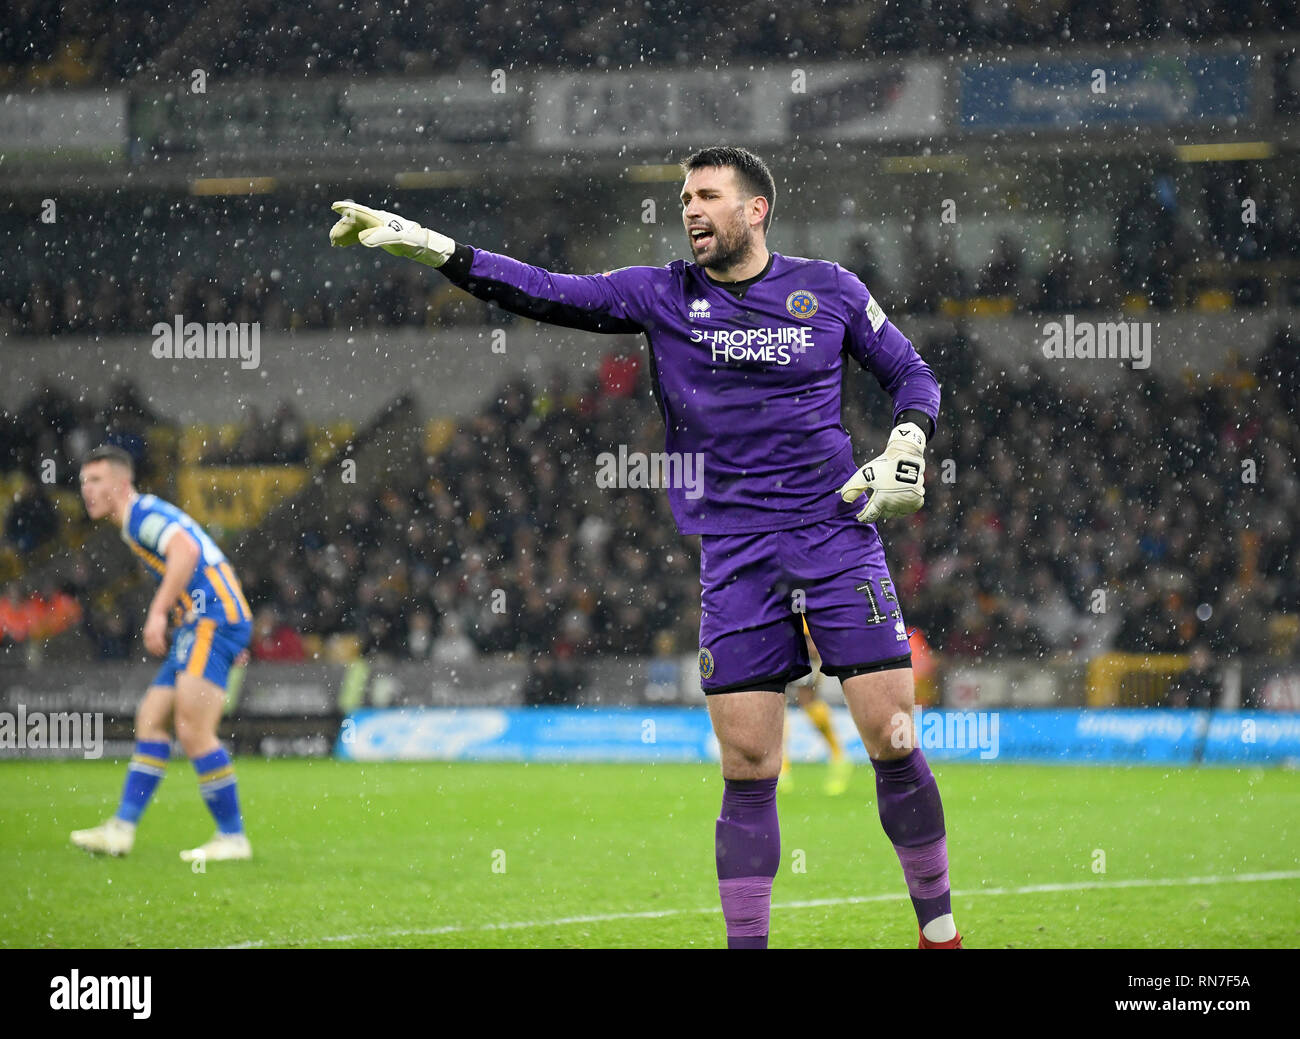 Football Football Steve Arnold de Shrewsbury Town FC Photo Stock